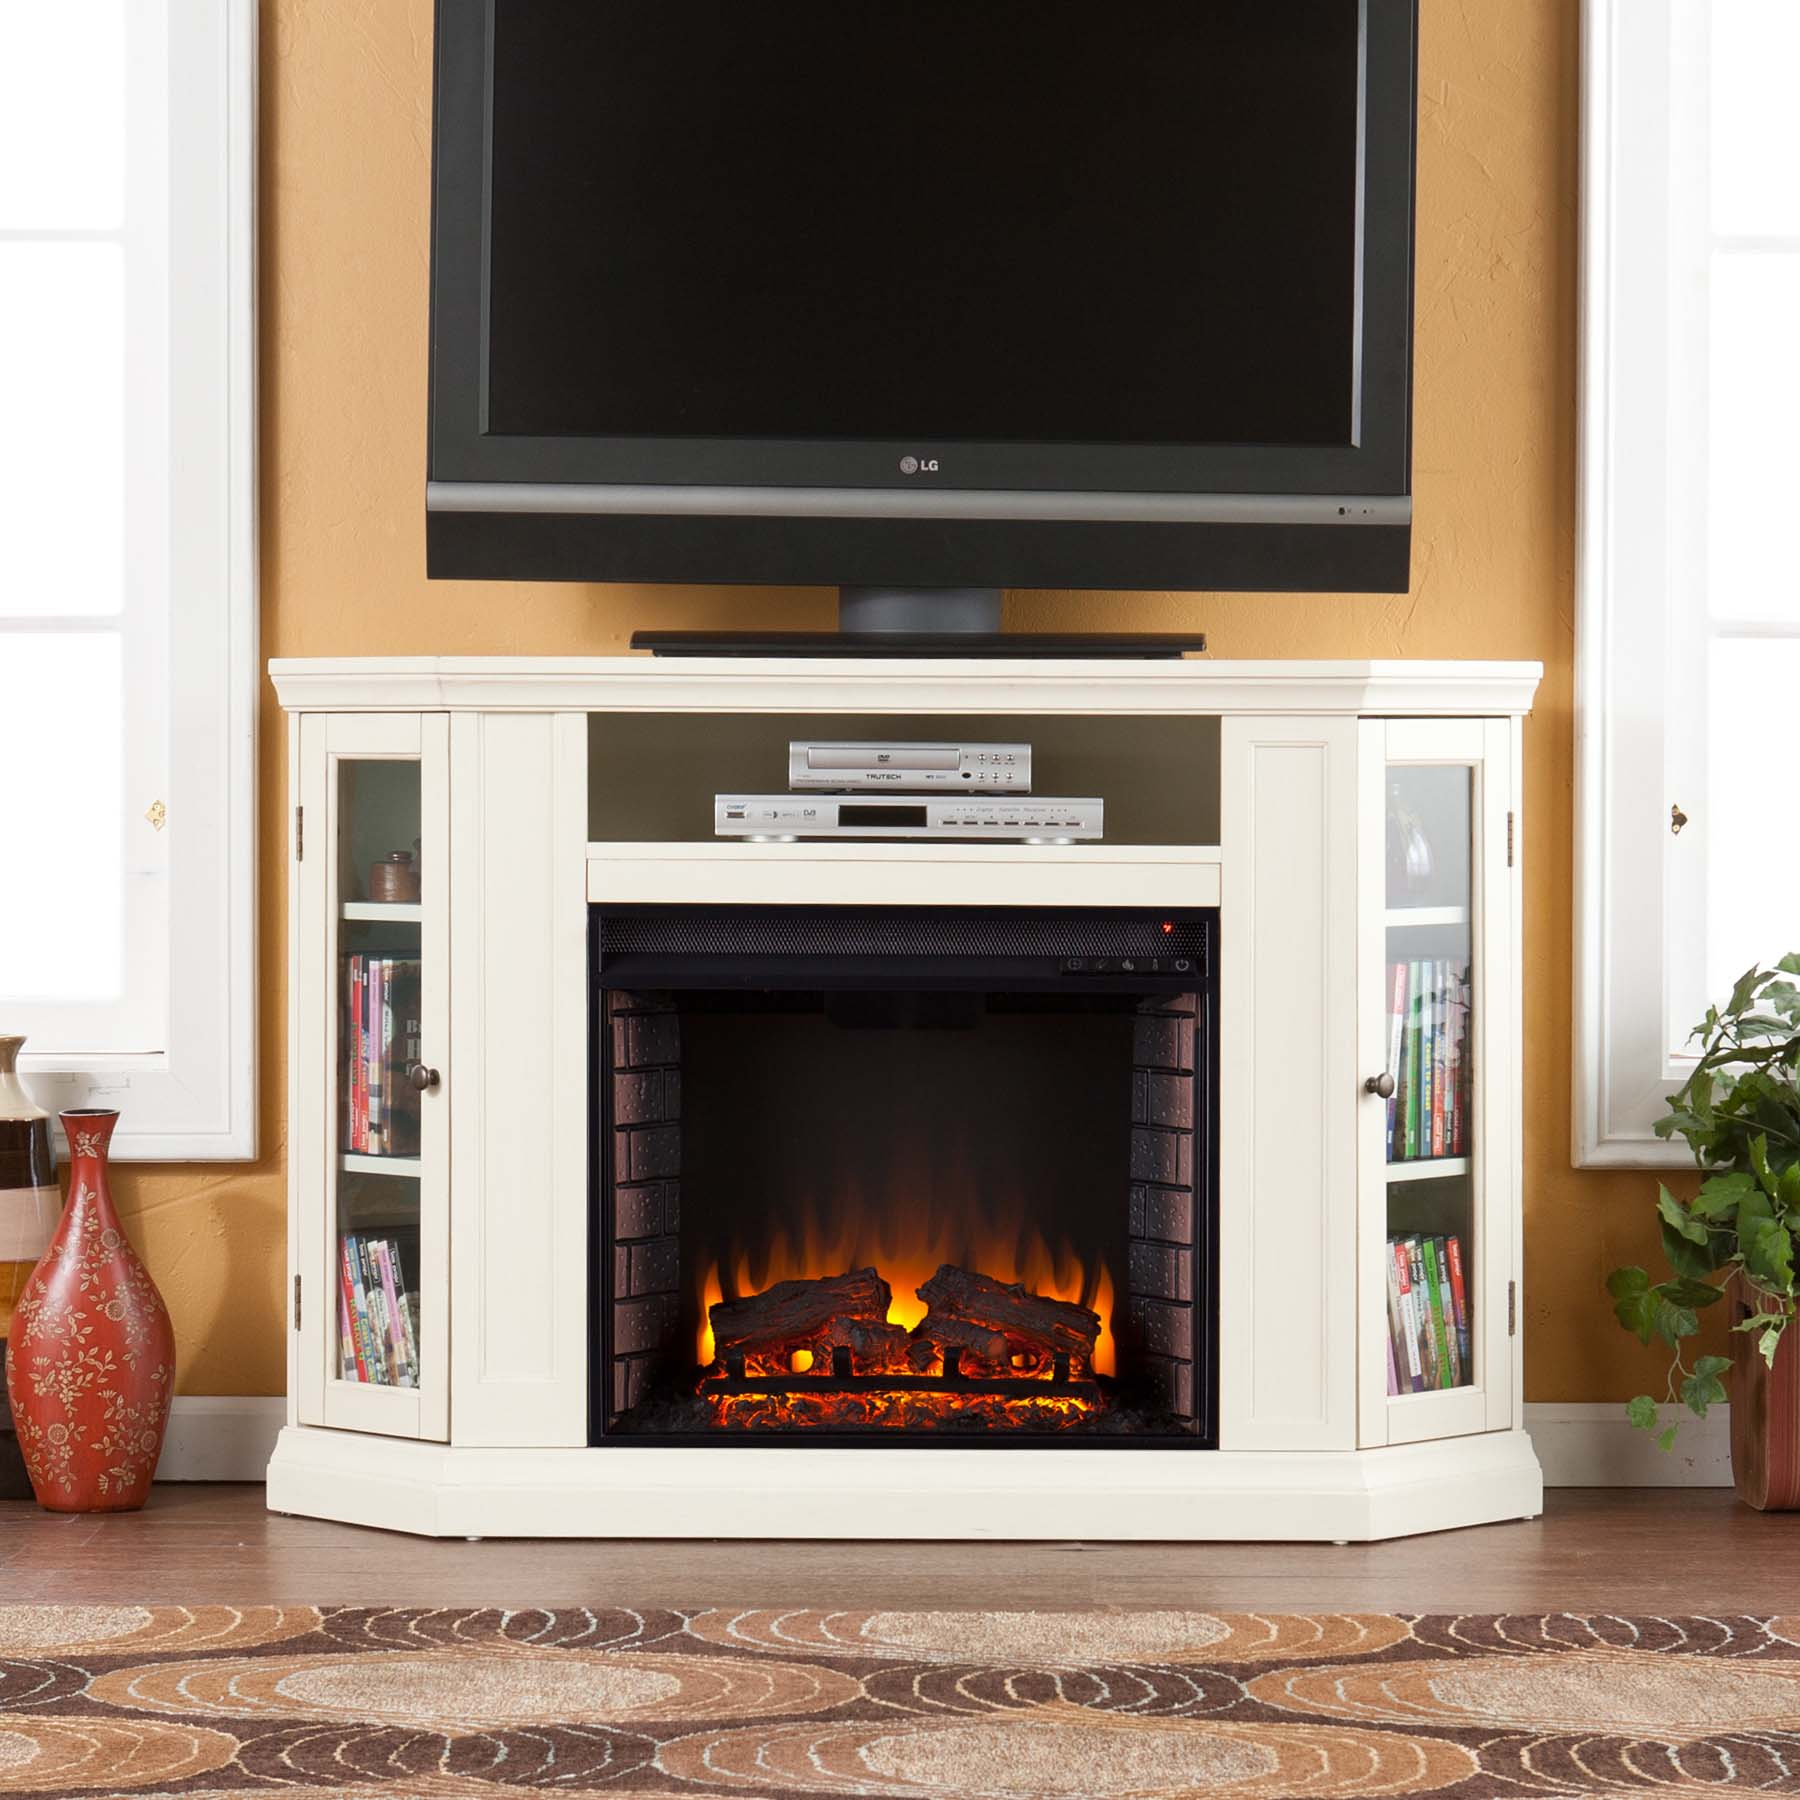 Tips for Buying an Electric Fireplace  PortableFireplacecomPortableFireplacecom